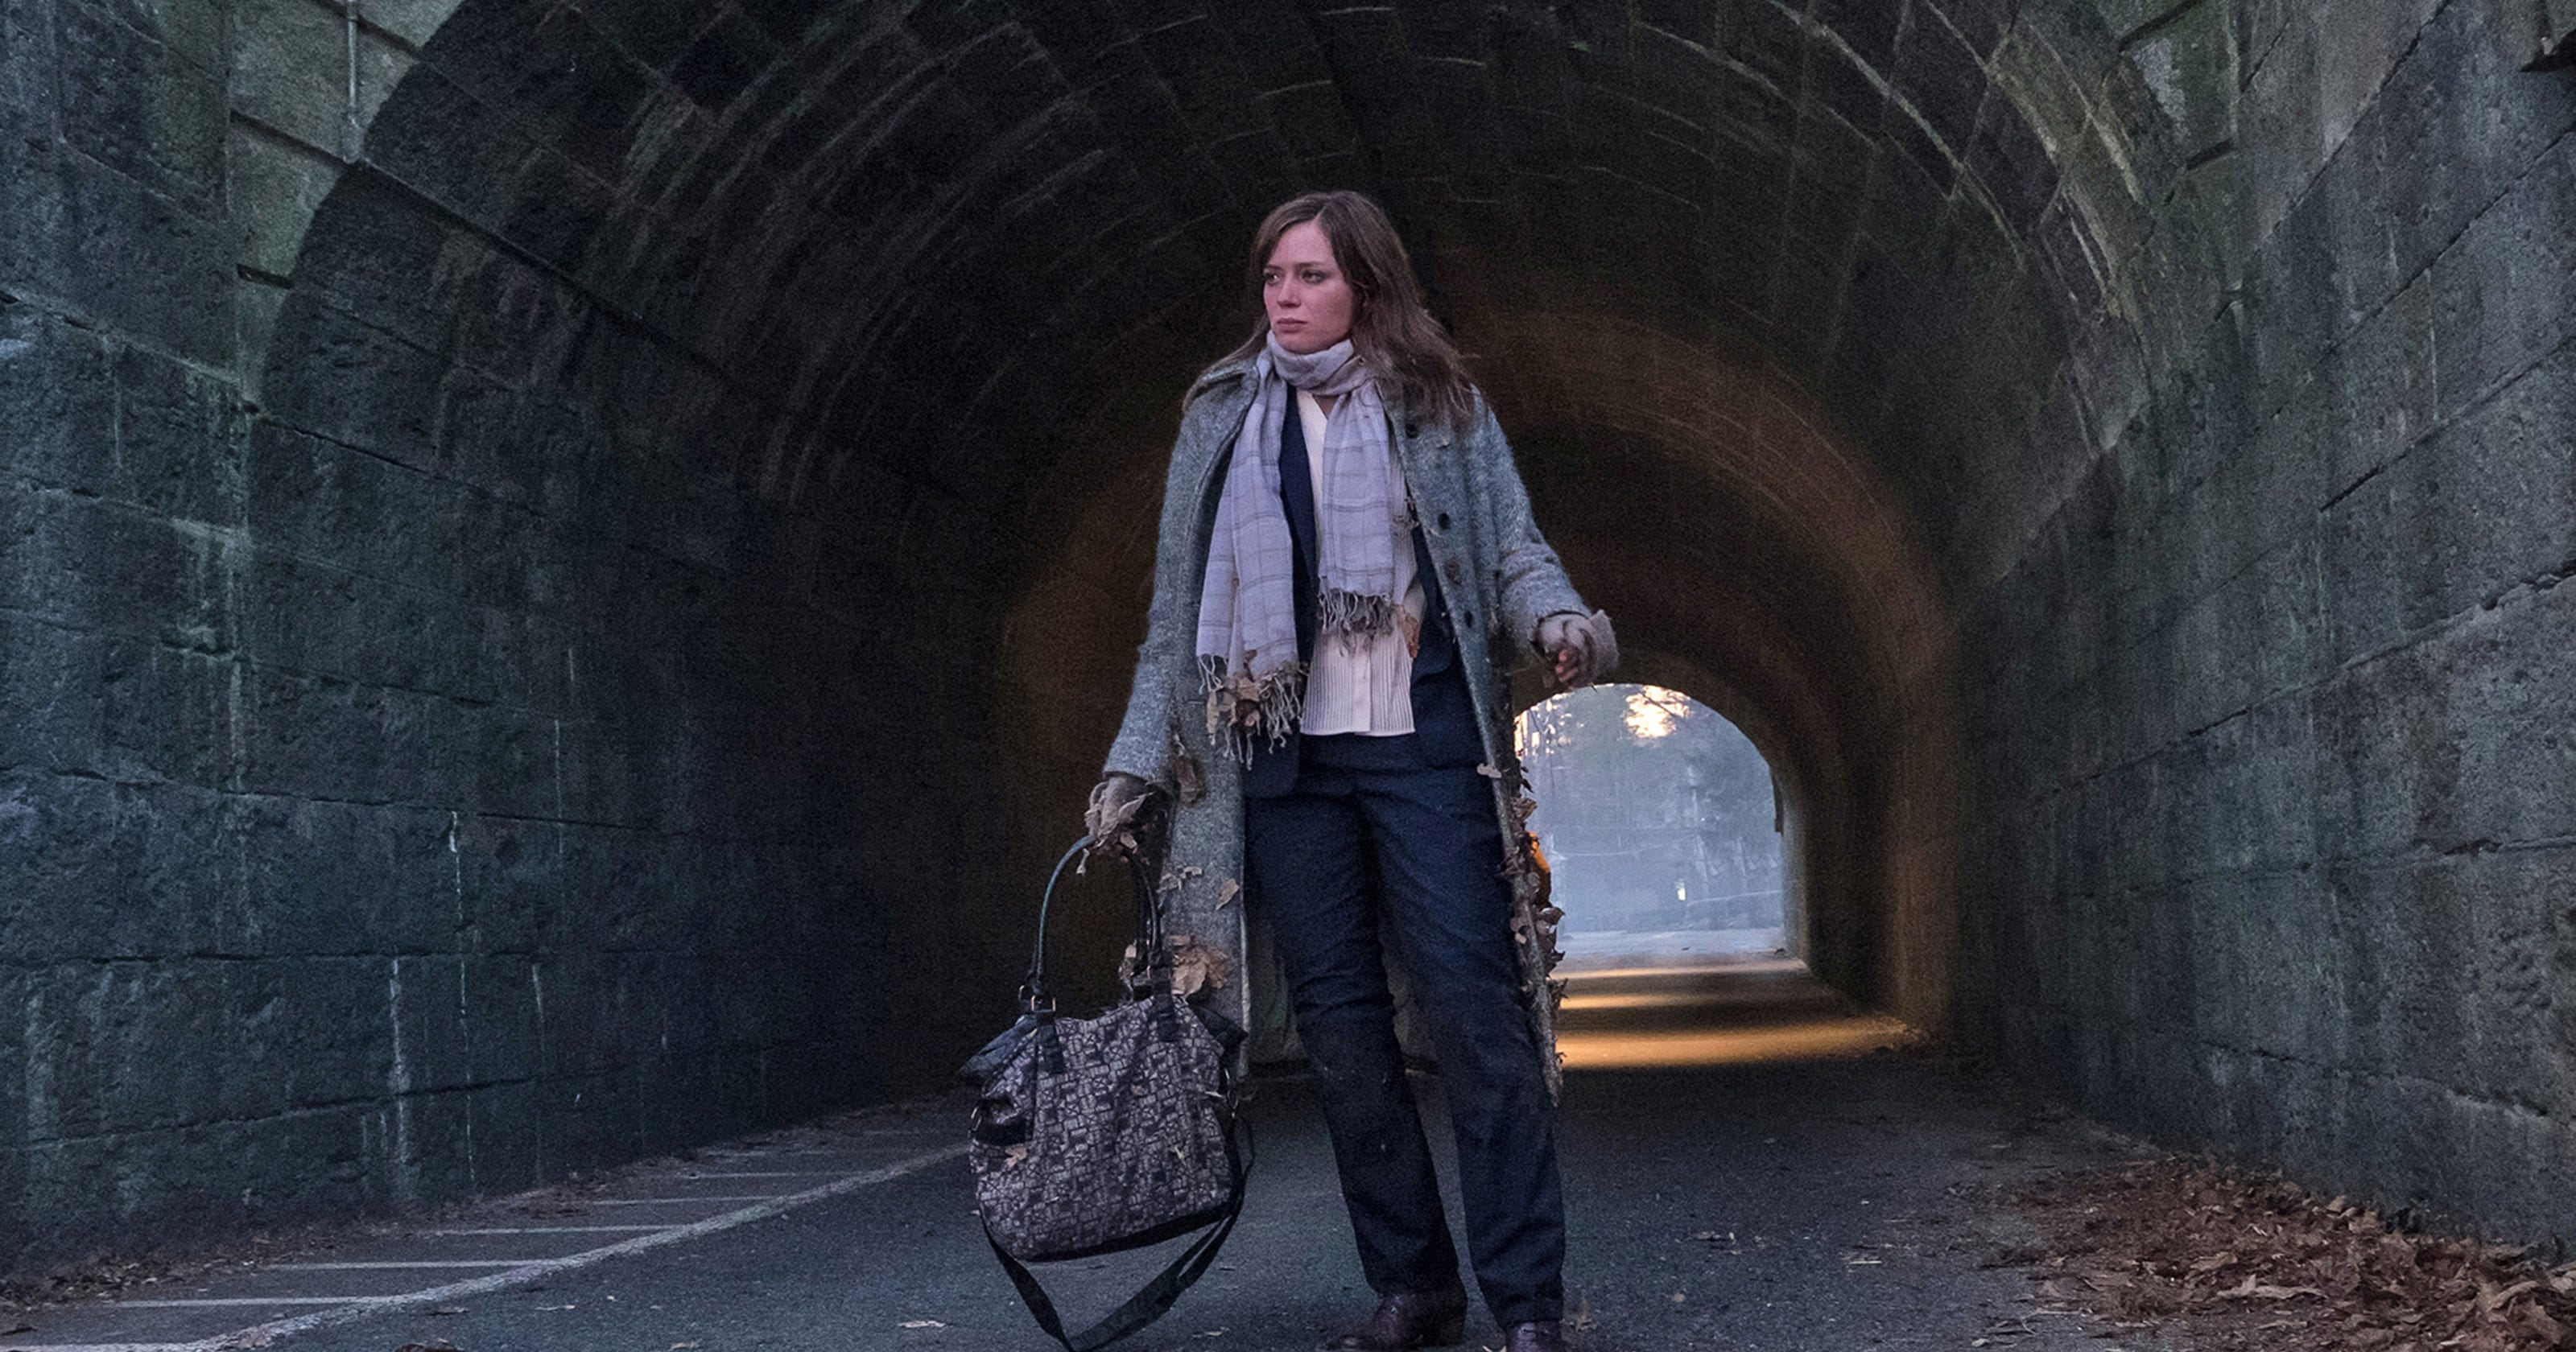 Book Review: The Girl on the Train by Paula Hawkins